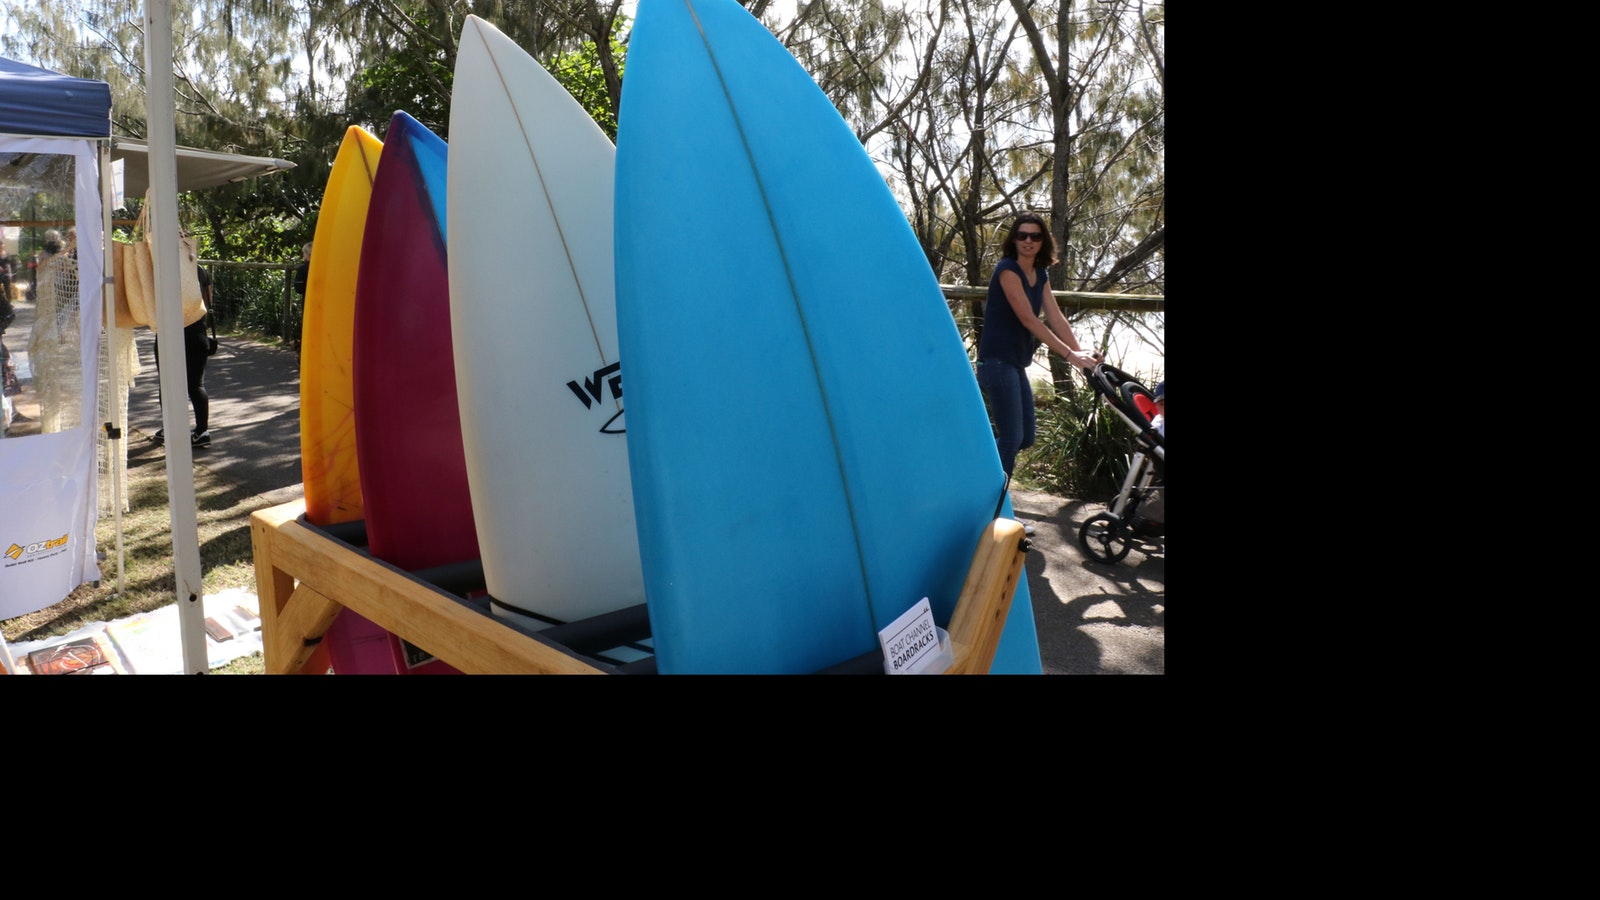 Four colourful surf boards displayed on a rack next to the famous Burleigh  beach break